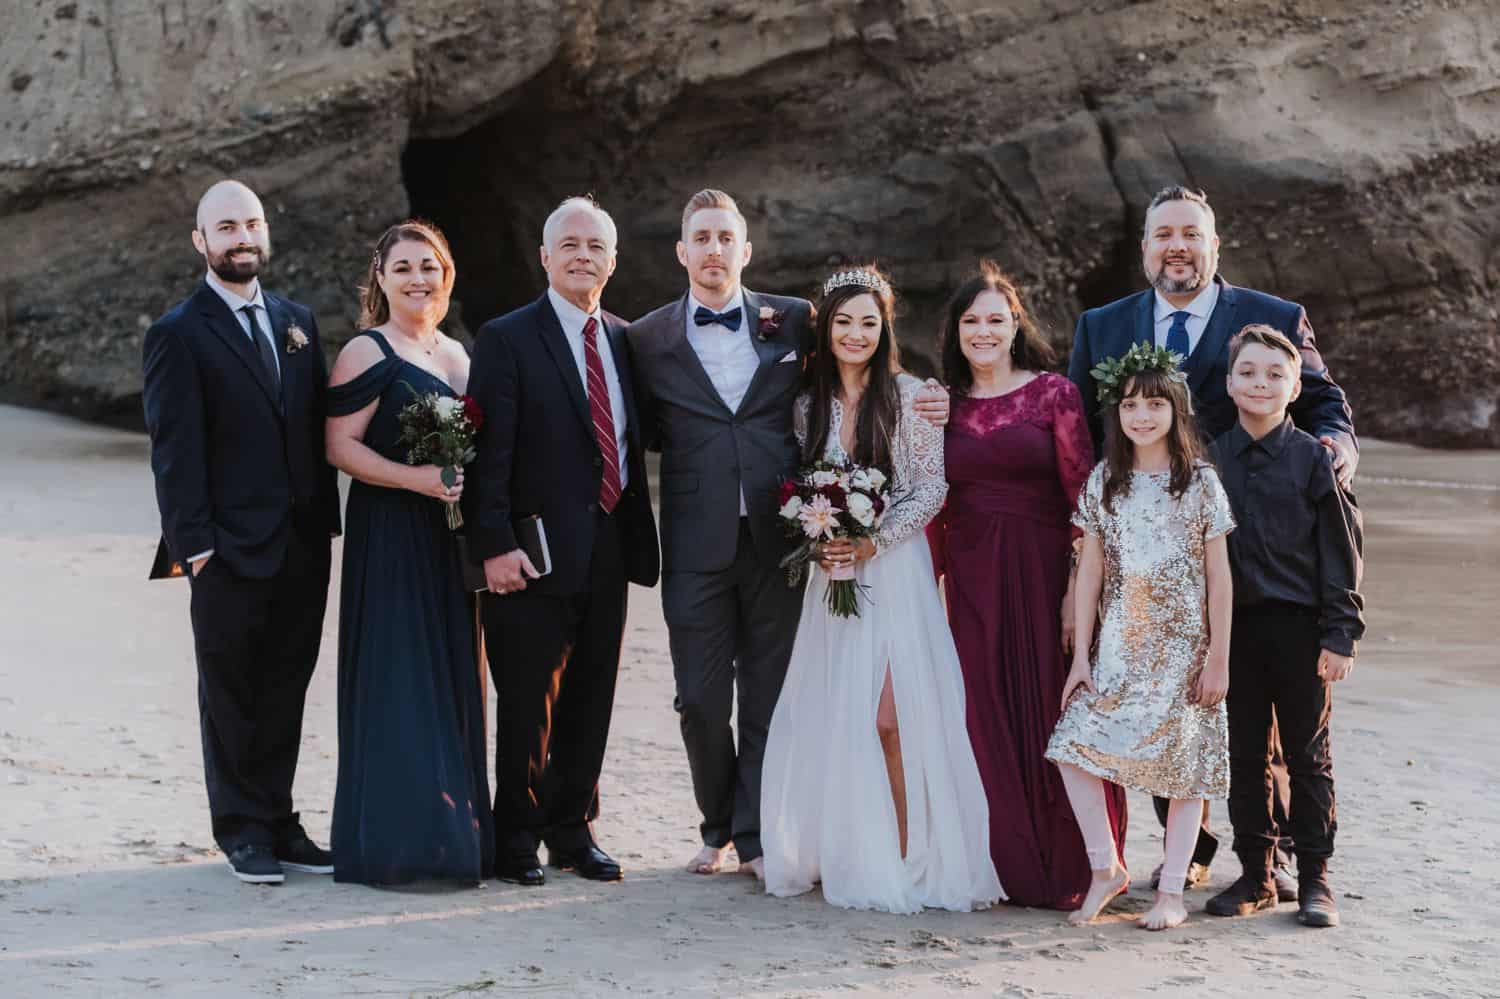 Seaside family portrait at an outdoor wedding by the cliffs